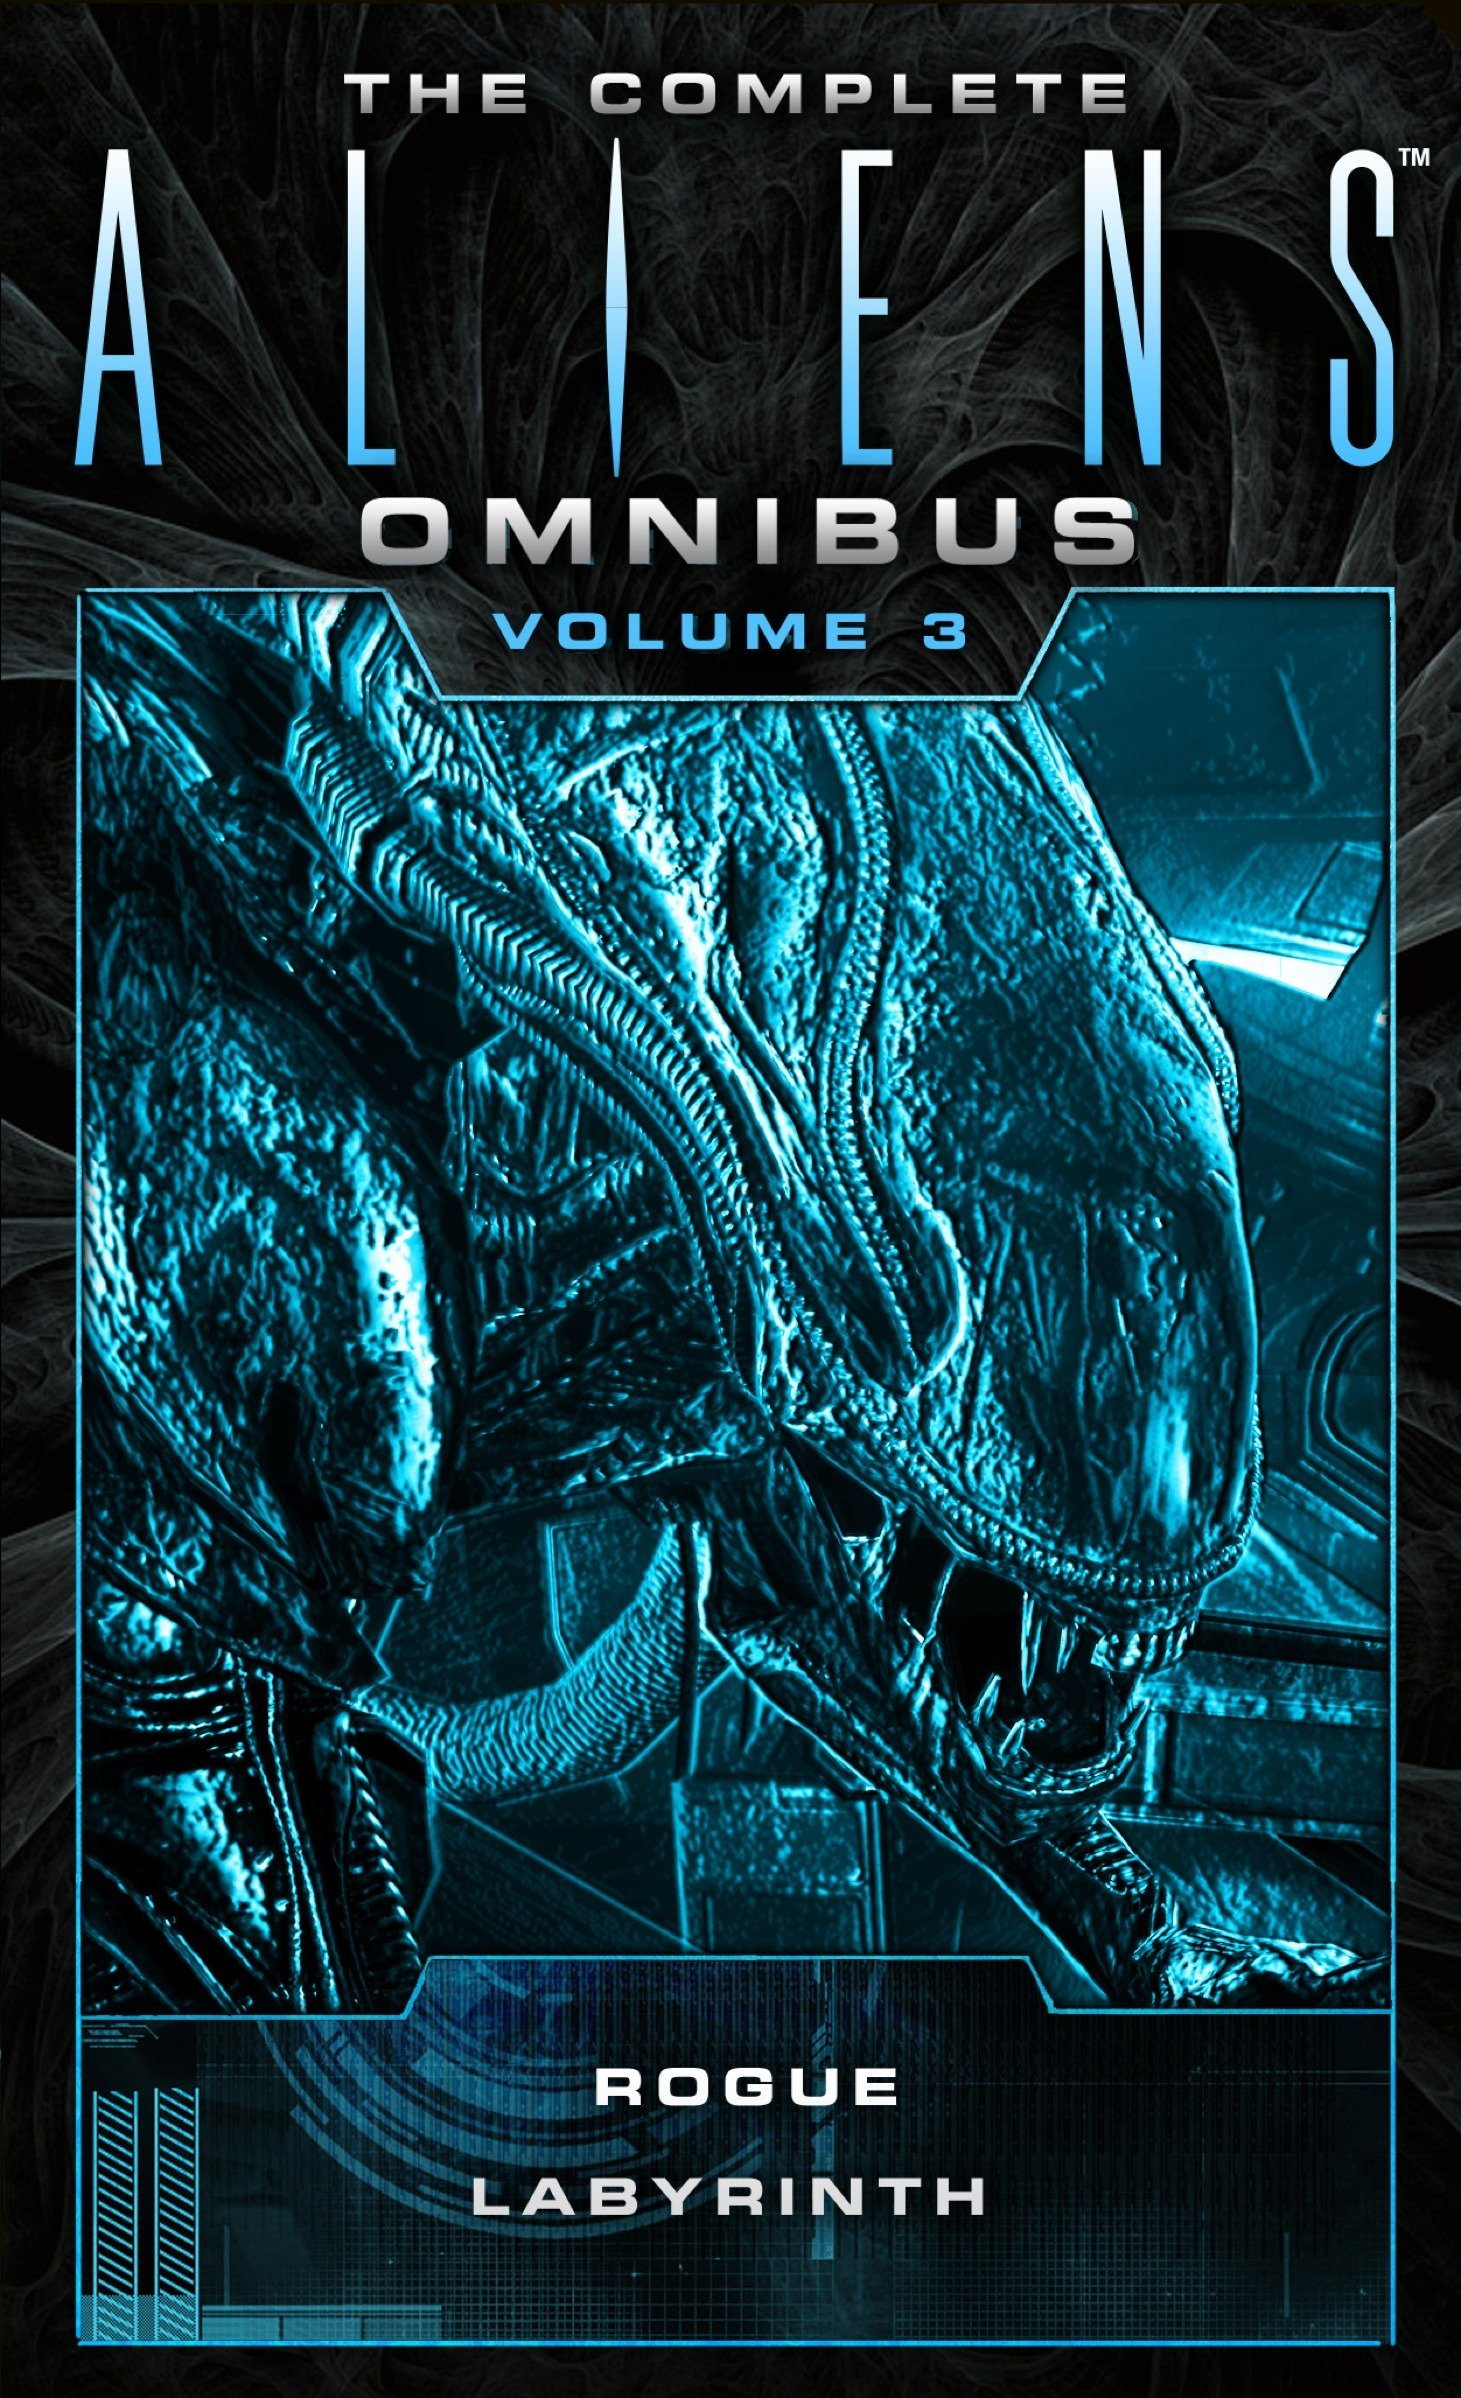 The Complete Aliens Omnibus: Volume Three (Rogue, Labyrinth): 3:  Amazon.co.uk: Sandy Schofield, S. D. Perry: 9781783299058: Books